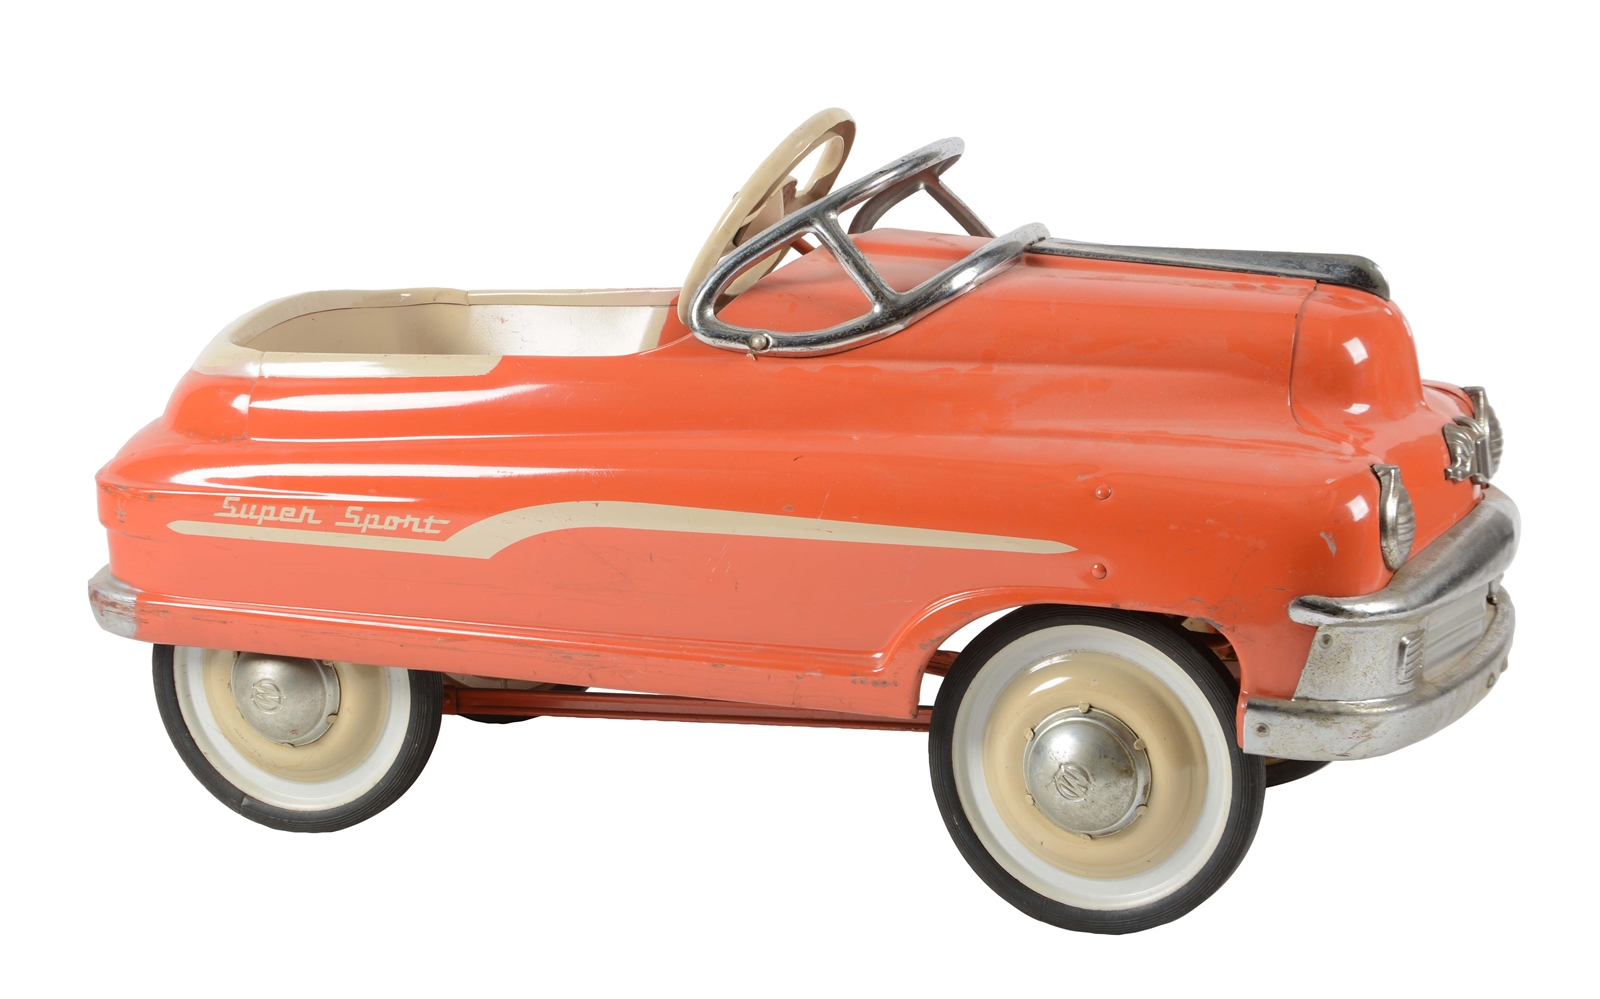 Pressed Steel Murray Super Sport Pedal Car.